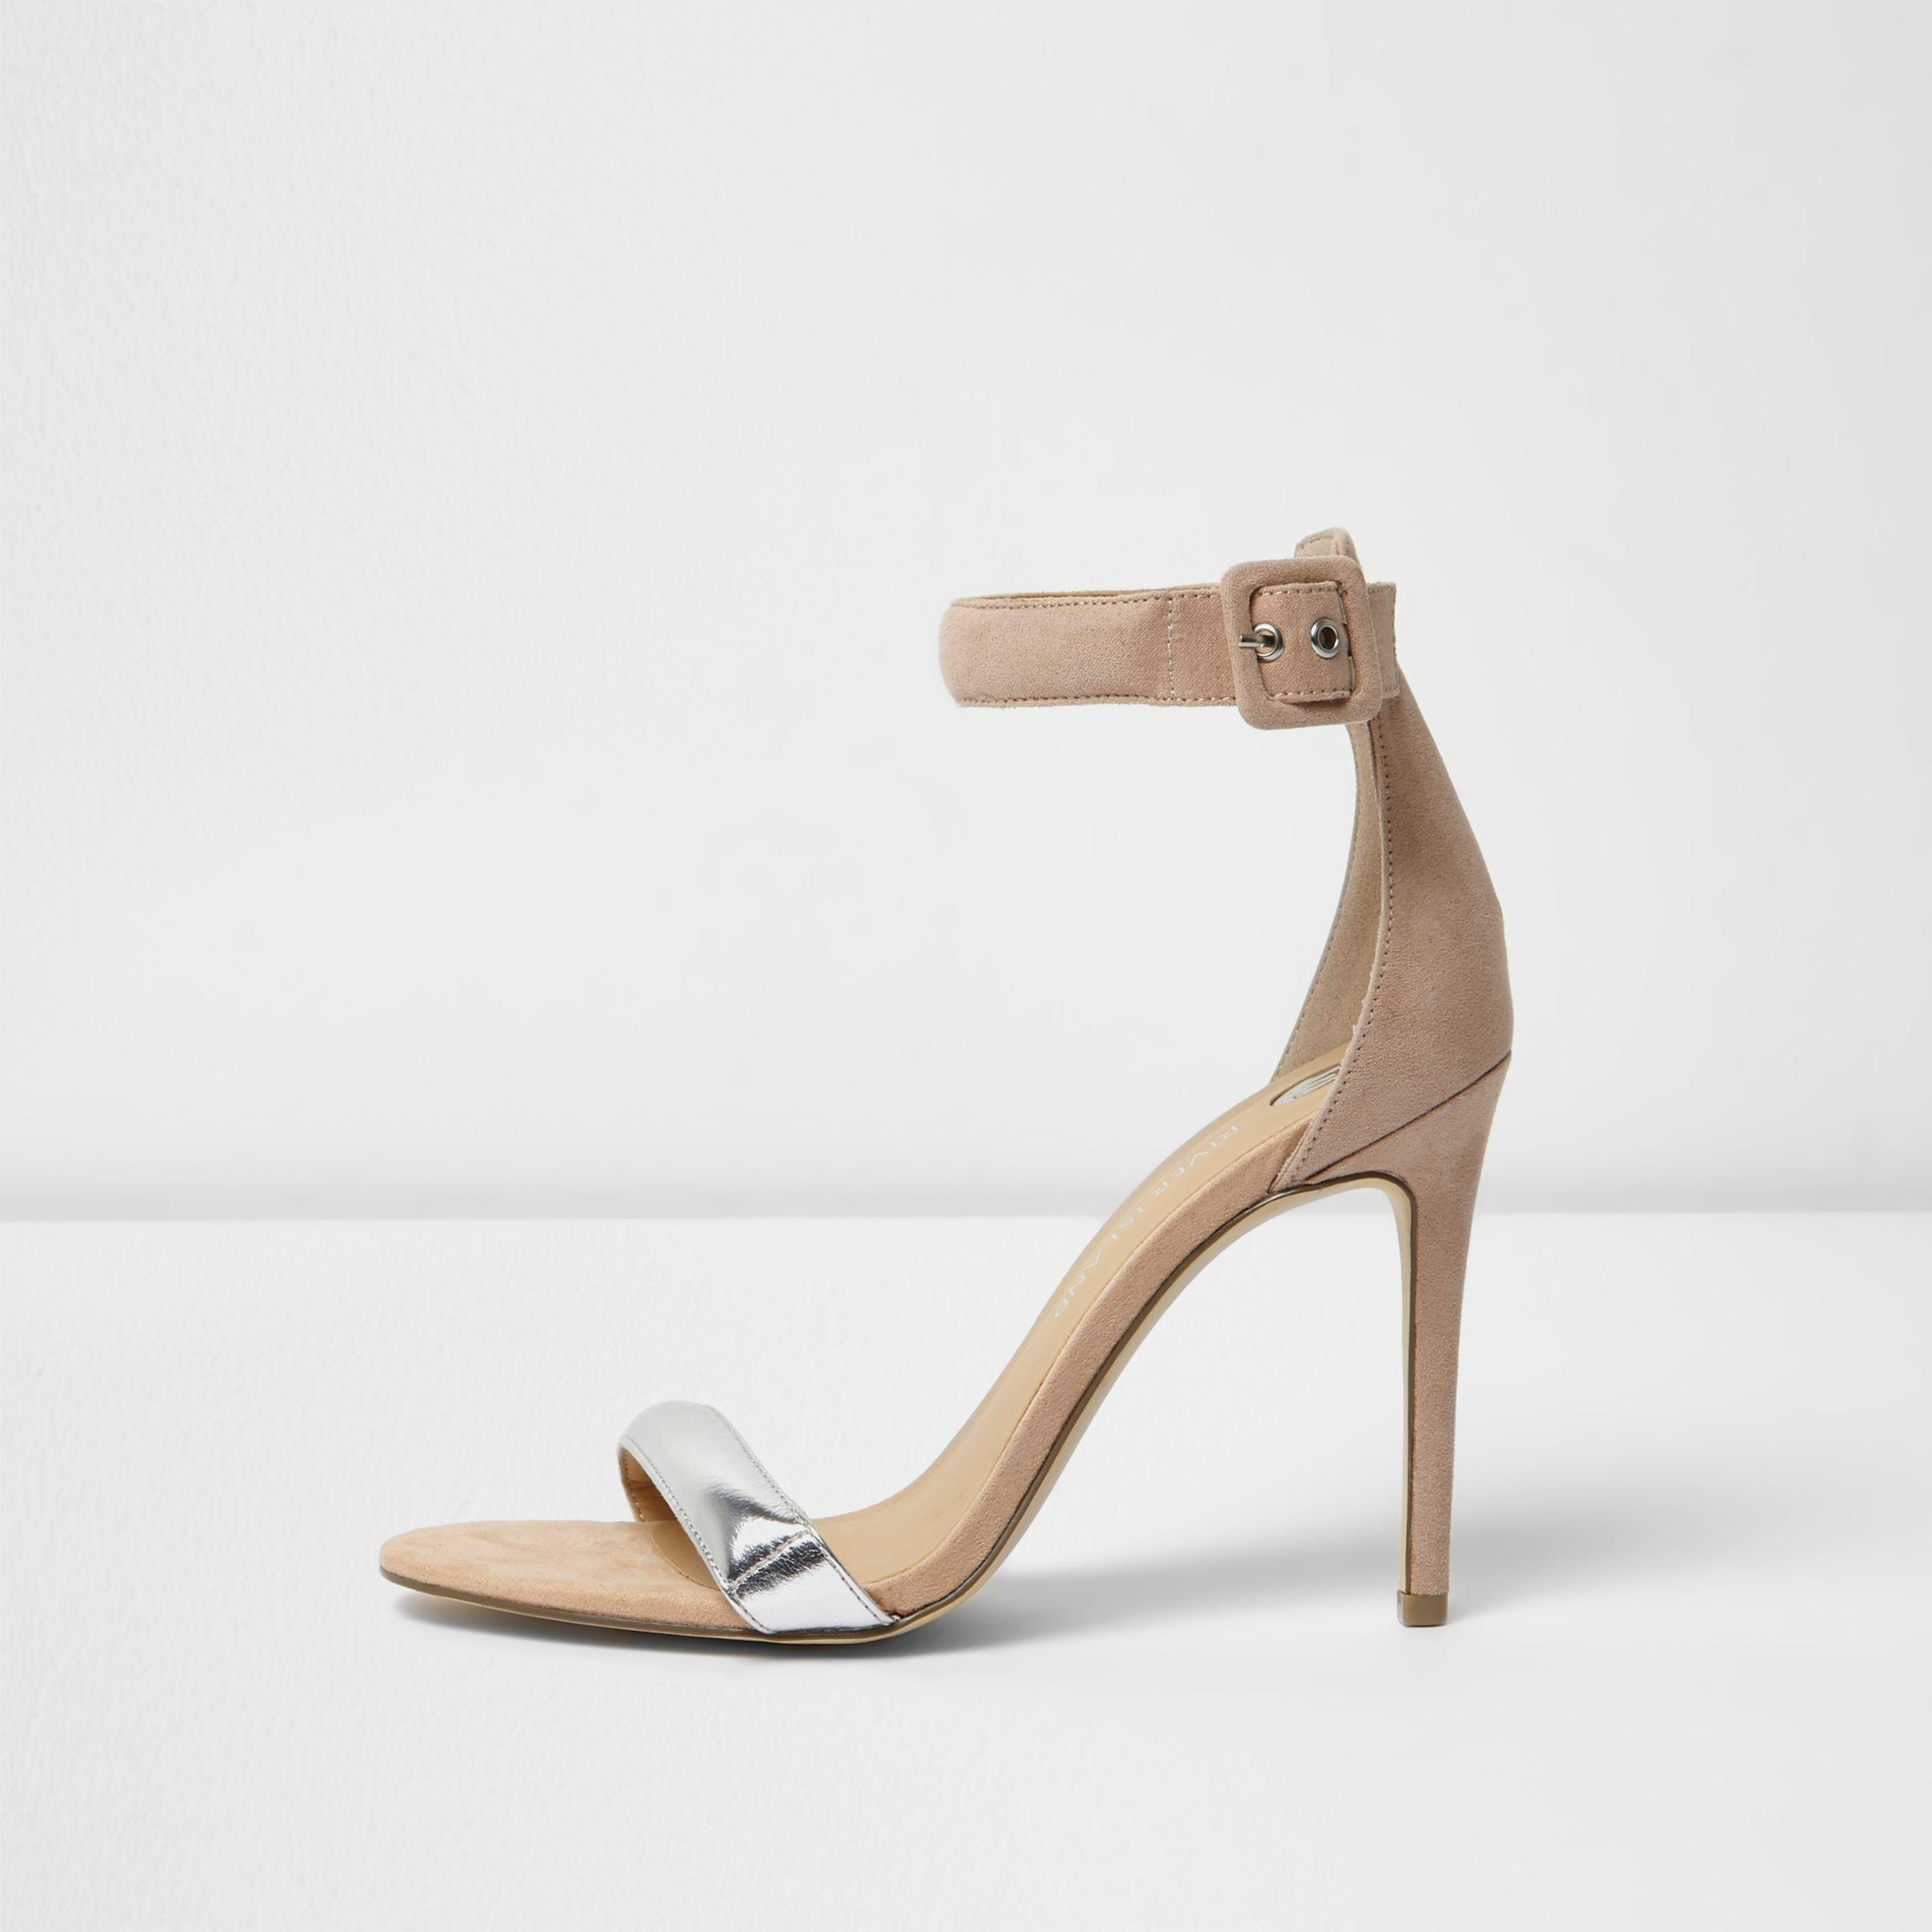 a80b2190ef48 Lyst - River Island Nude Silver Strap Barely There Heeled Sandals in ...